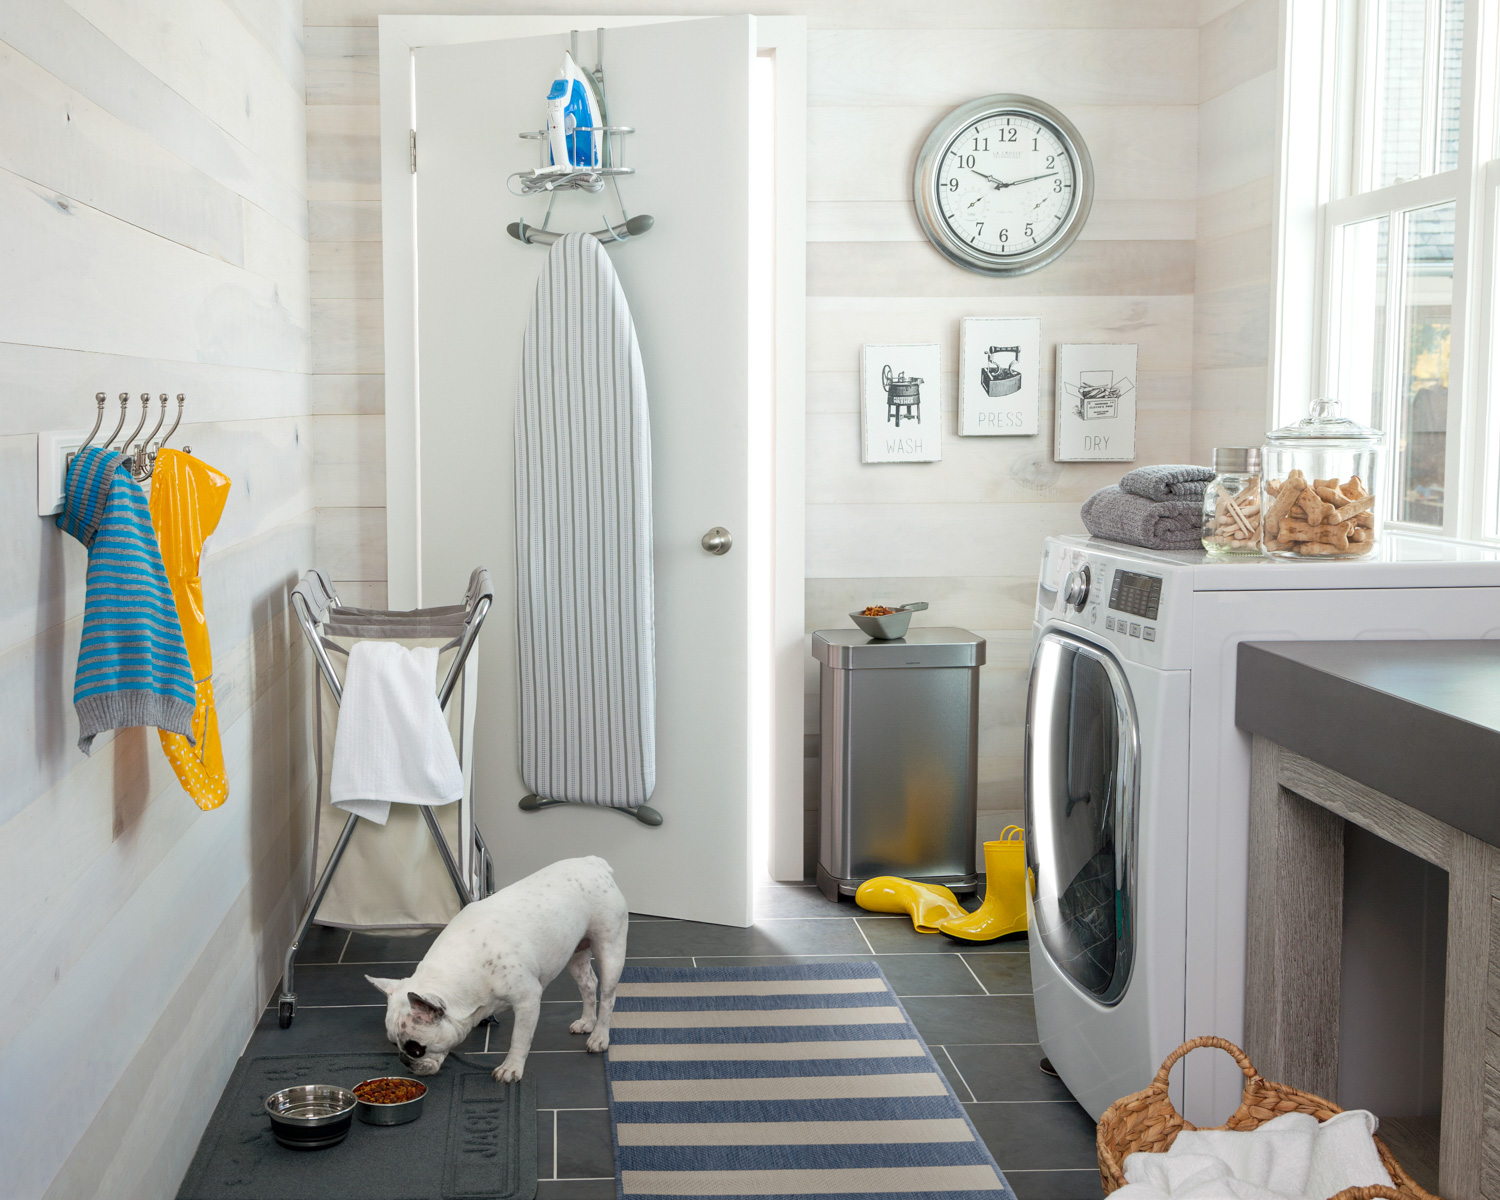 27844_LaundryRoom_1_078_Overall-Edit_B